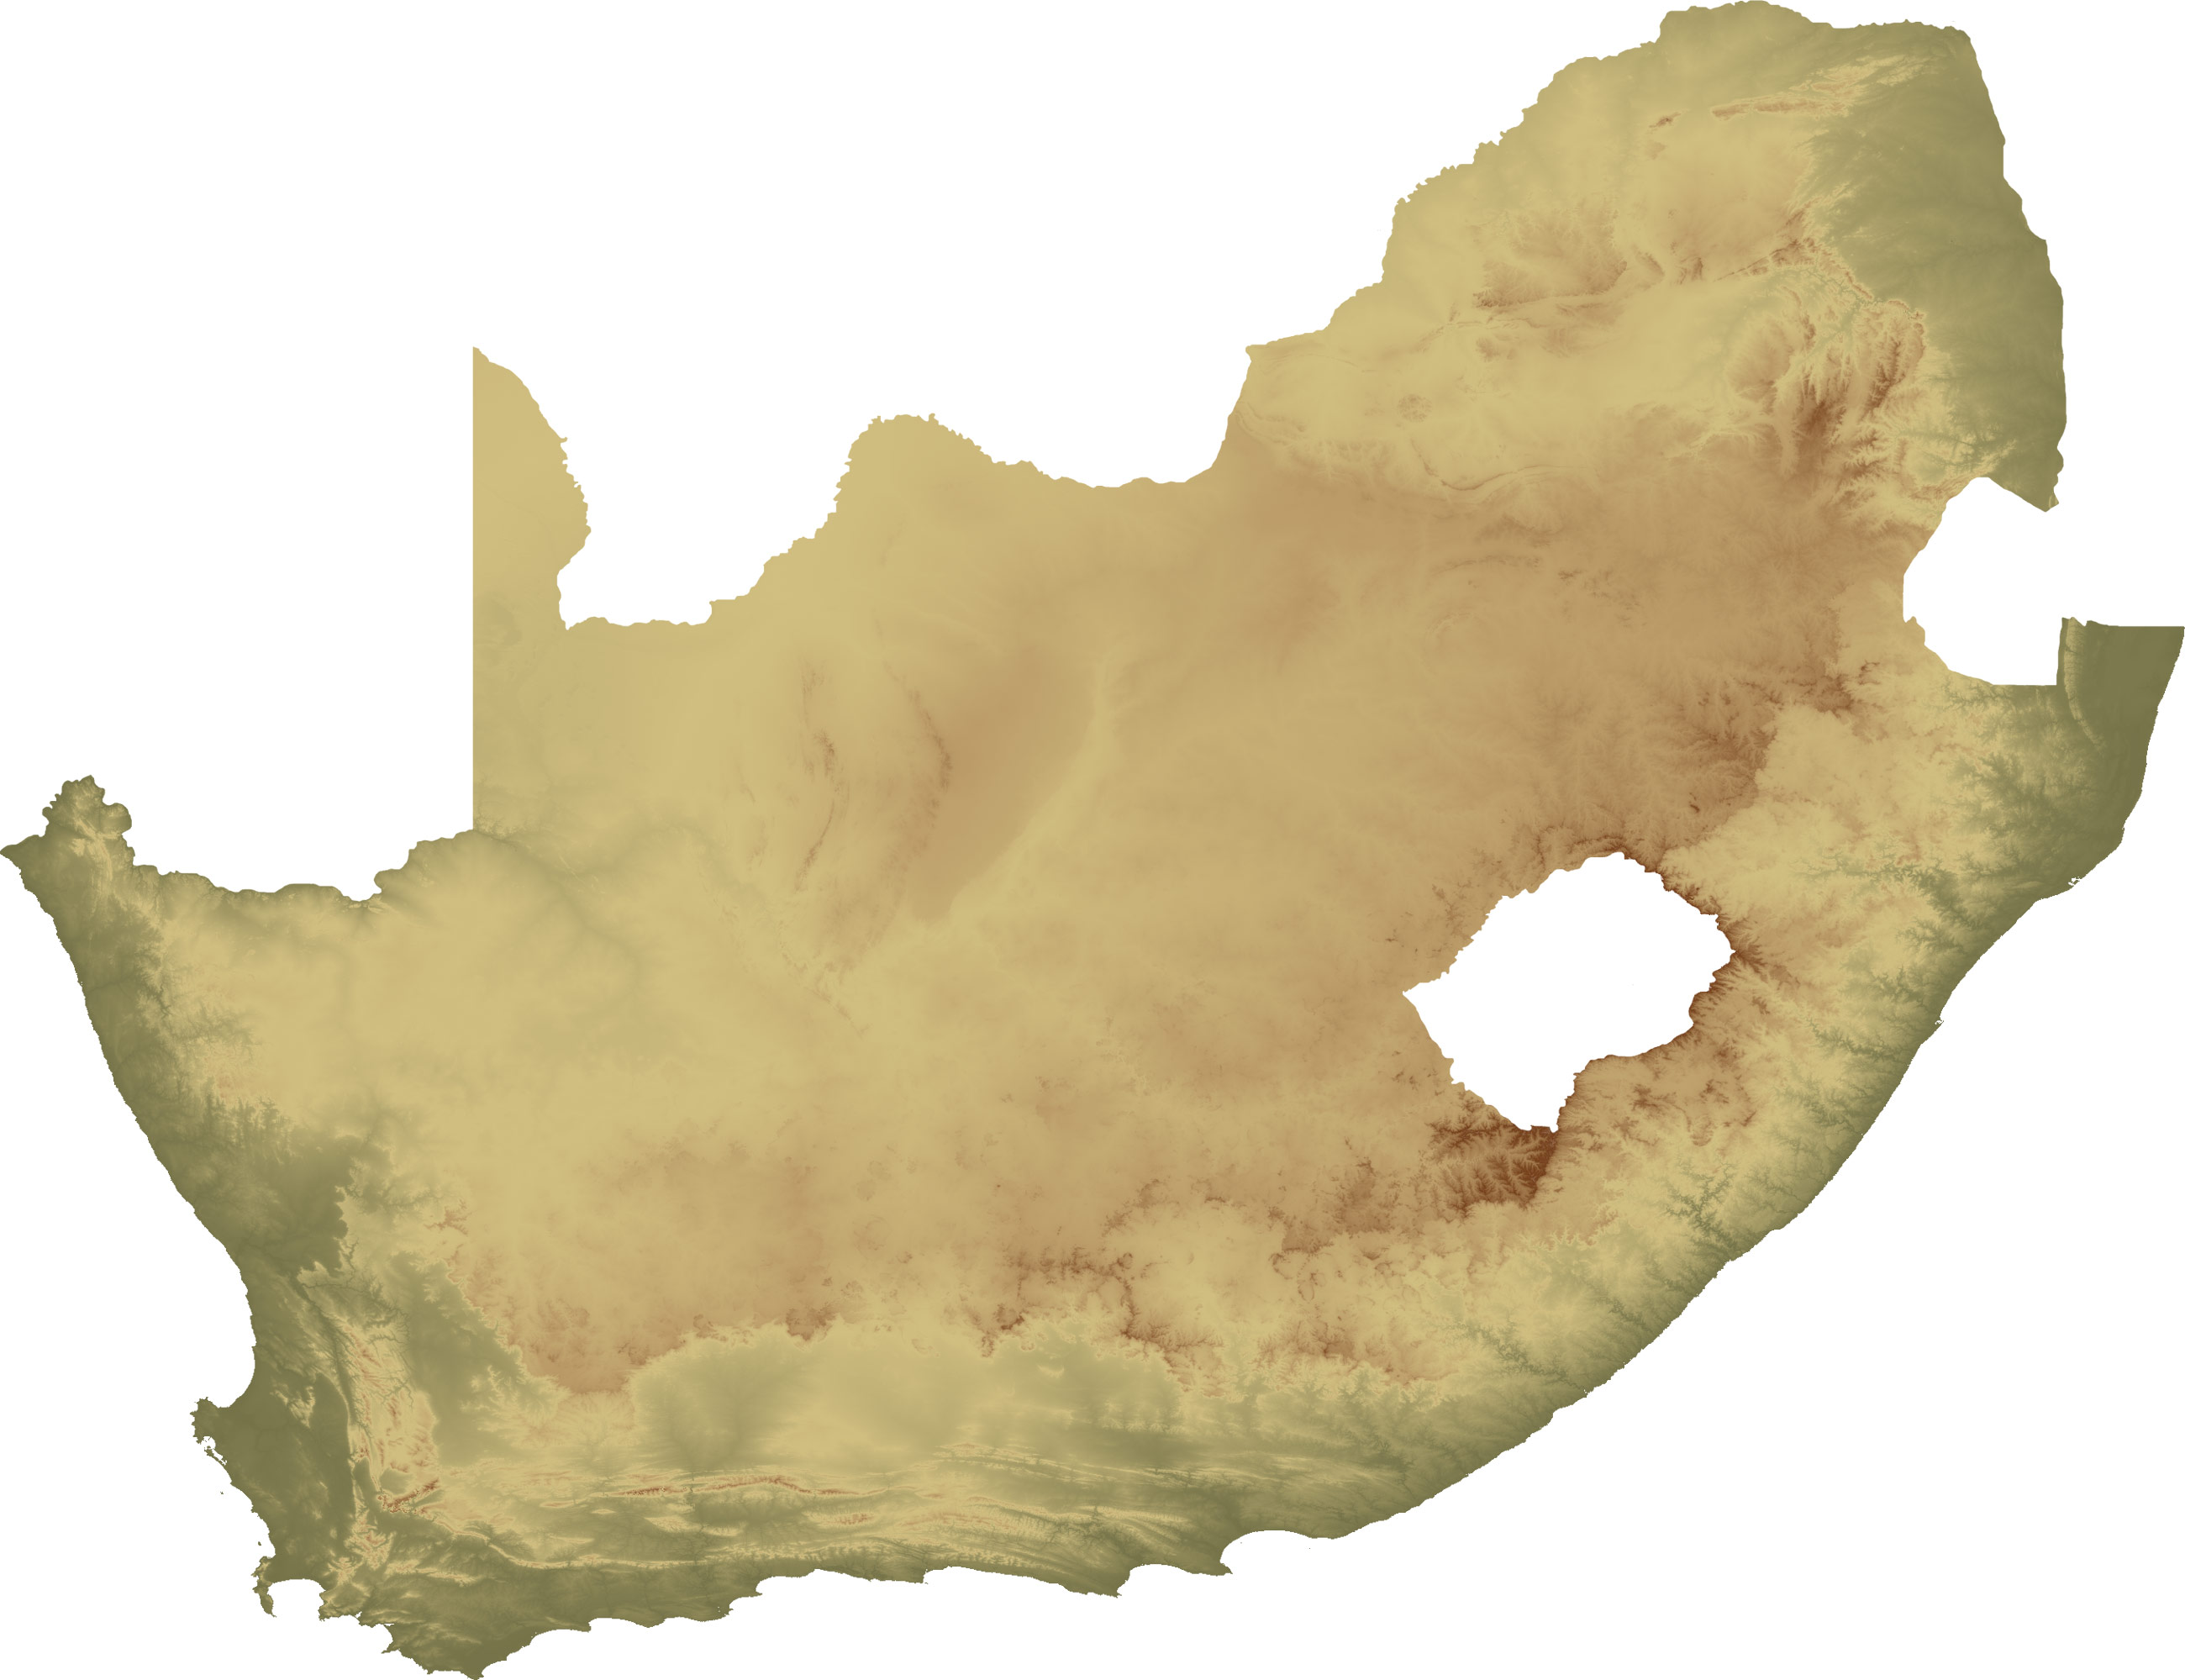 South Africa Topo Island Mapsofnet - South africa map